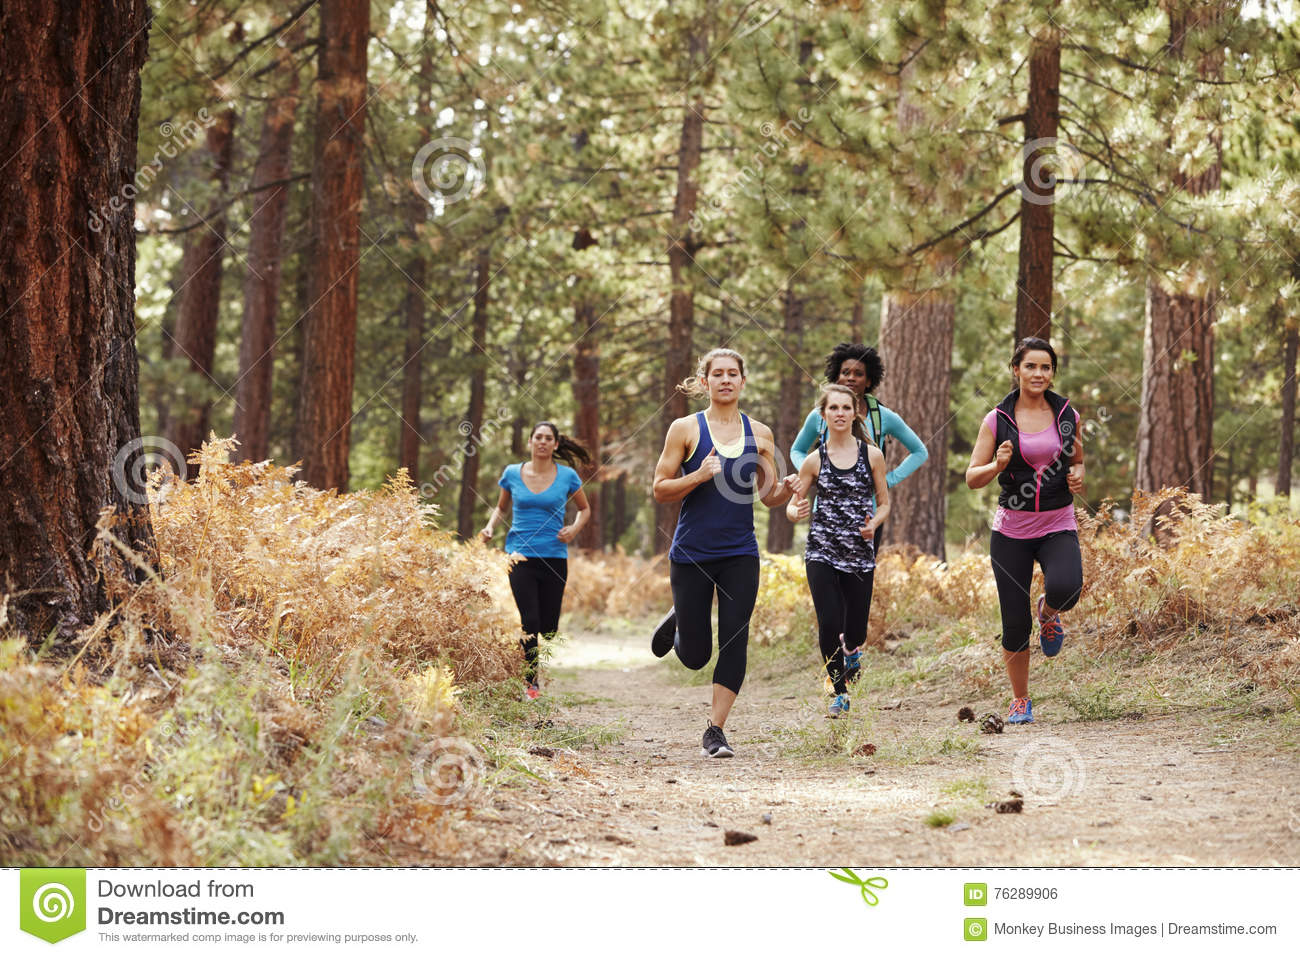 Group of young adult women running in a forest